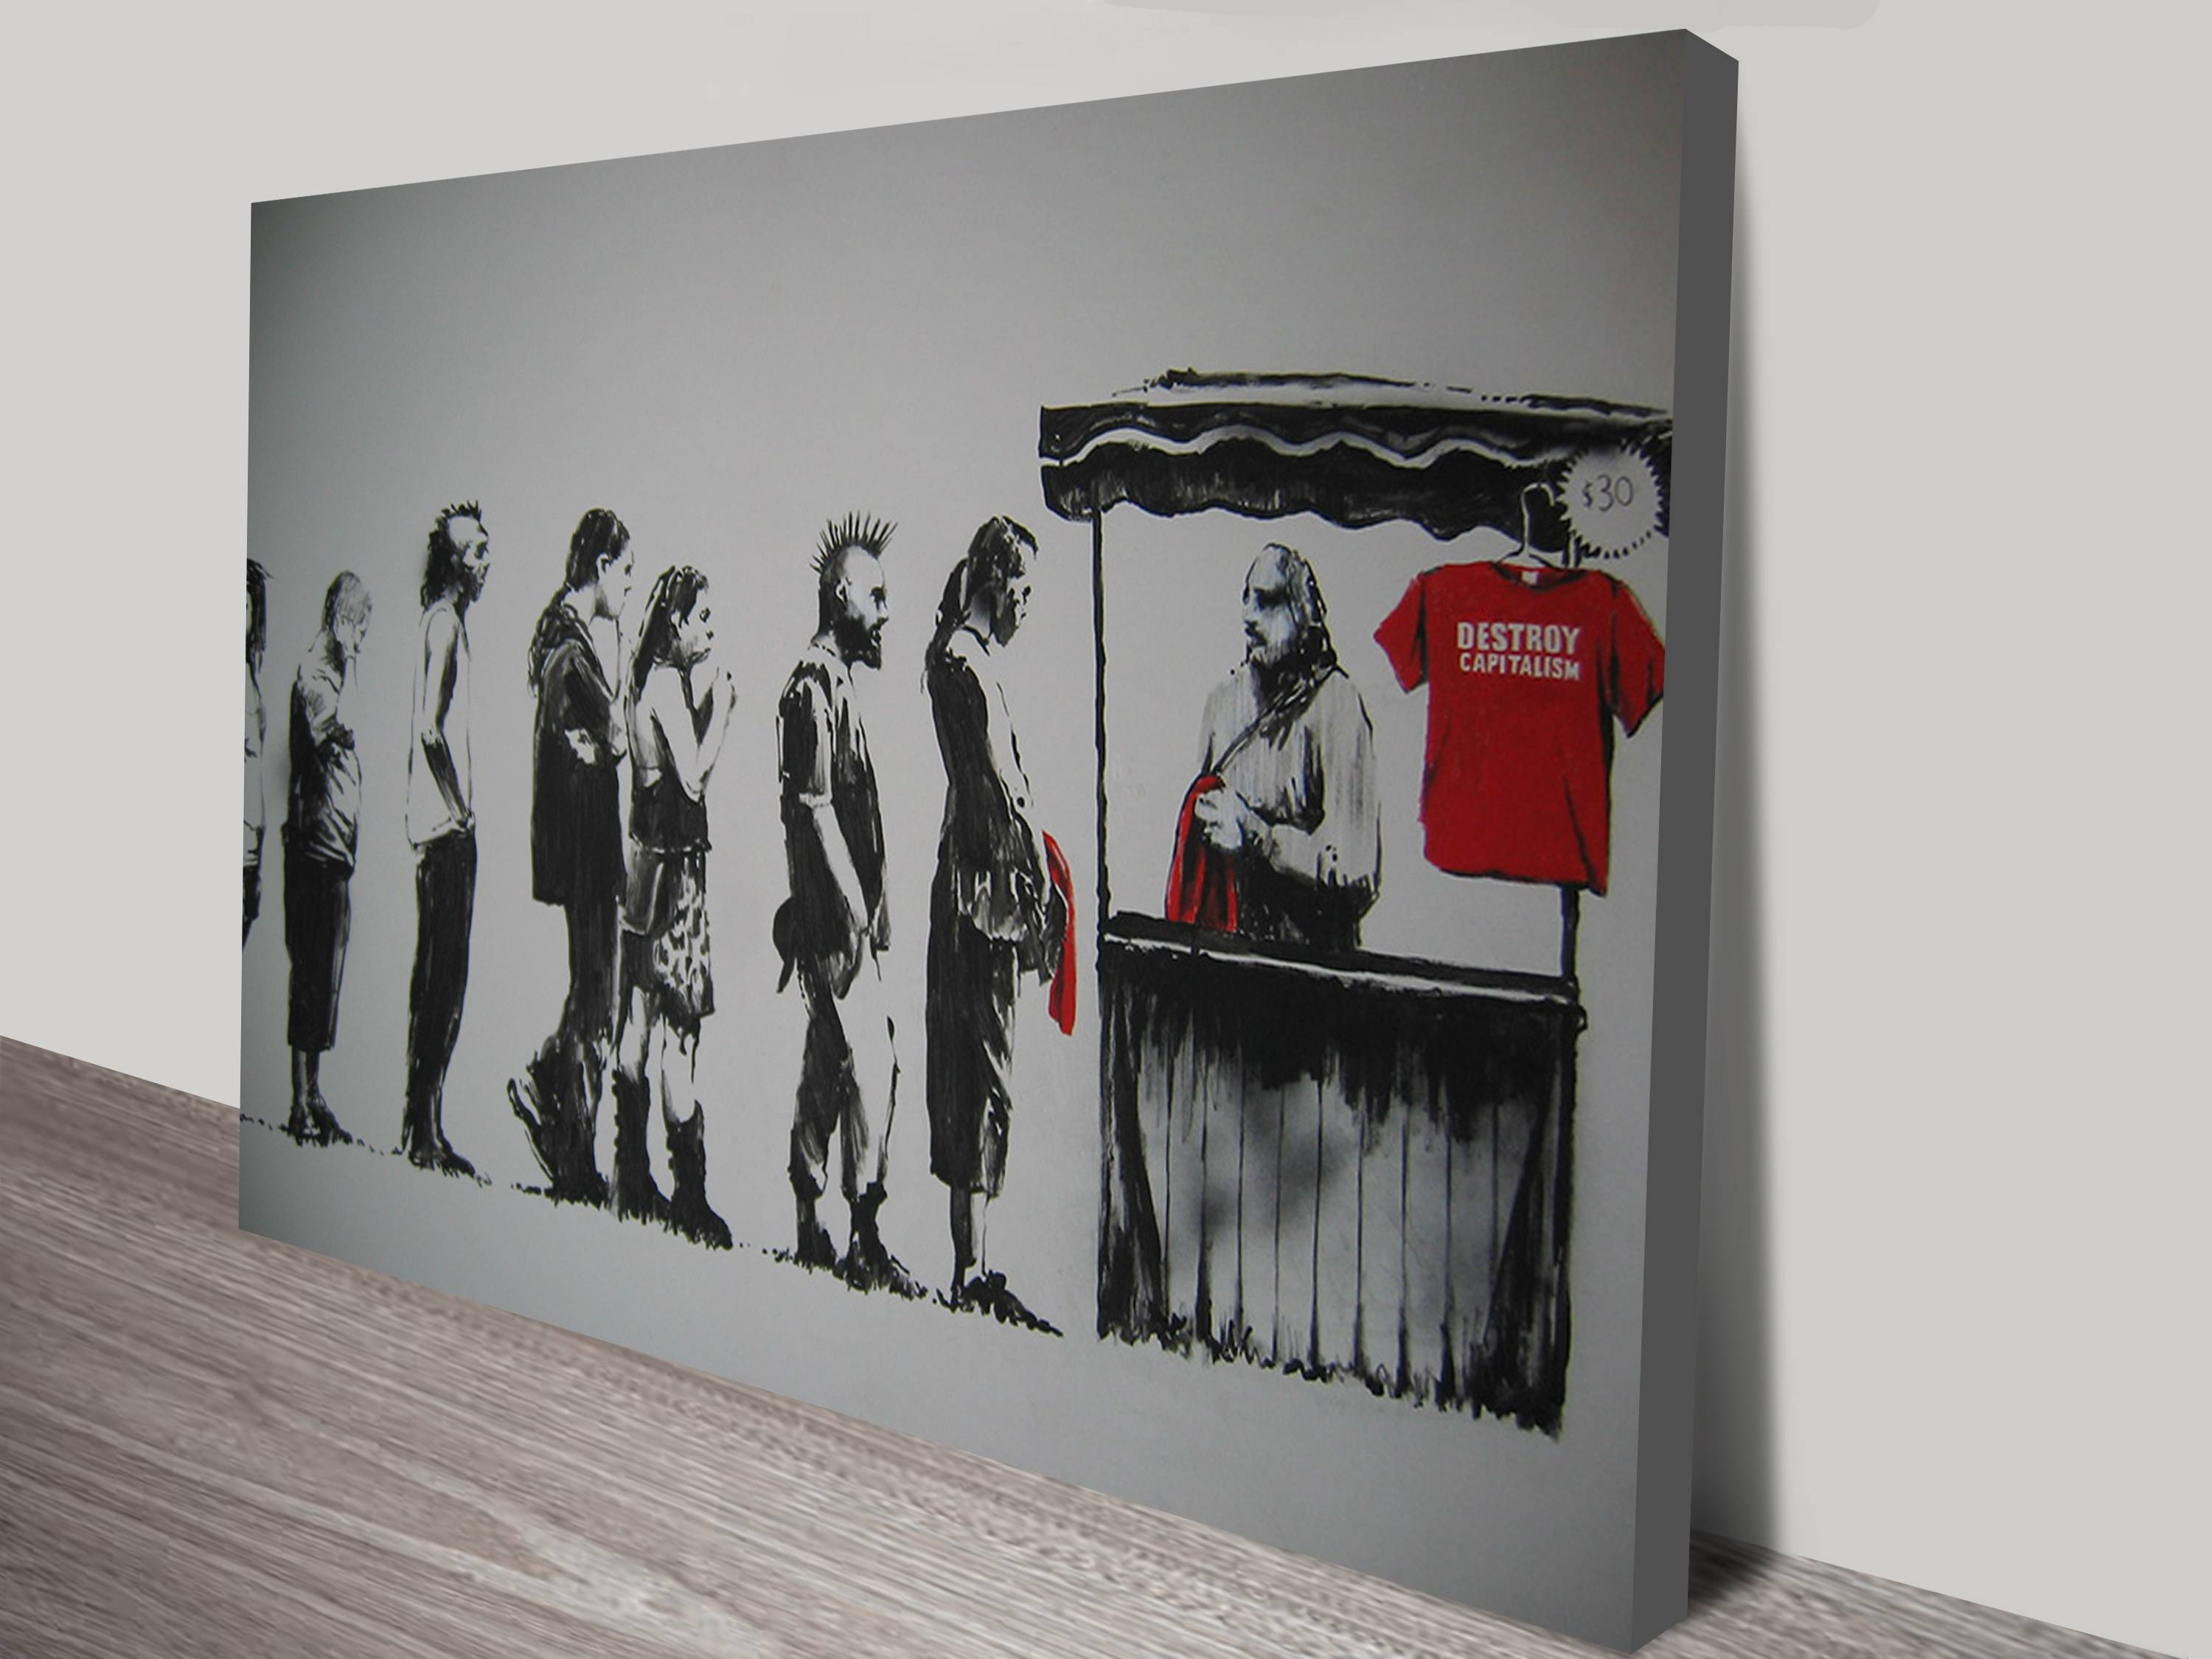 Destroy Capitalism Canvas Wall Art Australia For 2018 Banksy Wall Art Canvas (View 14 of 20)